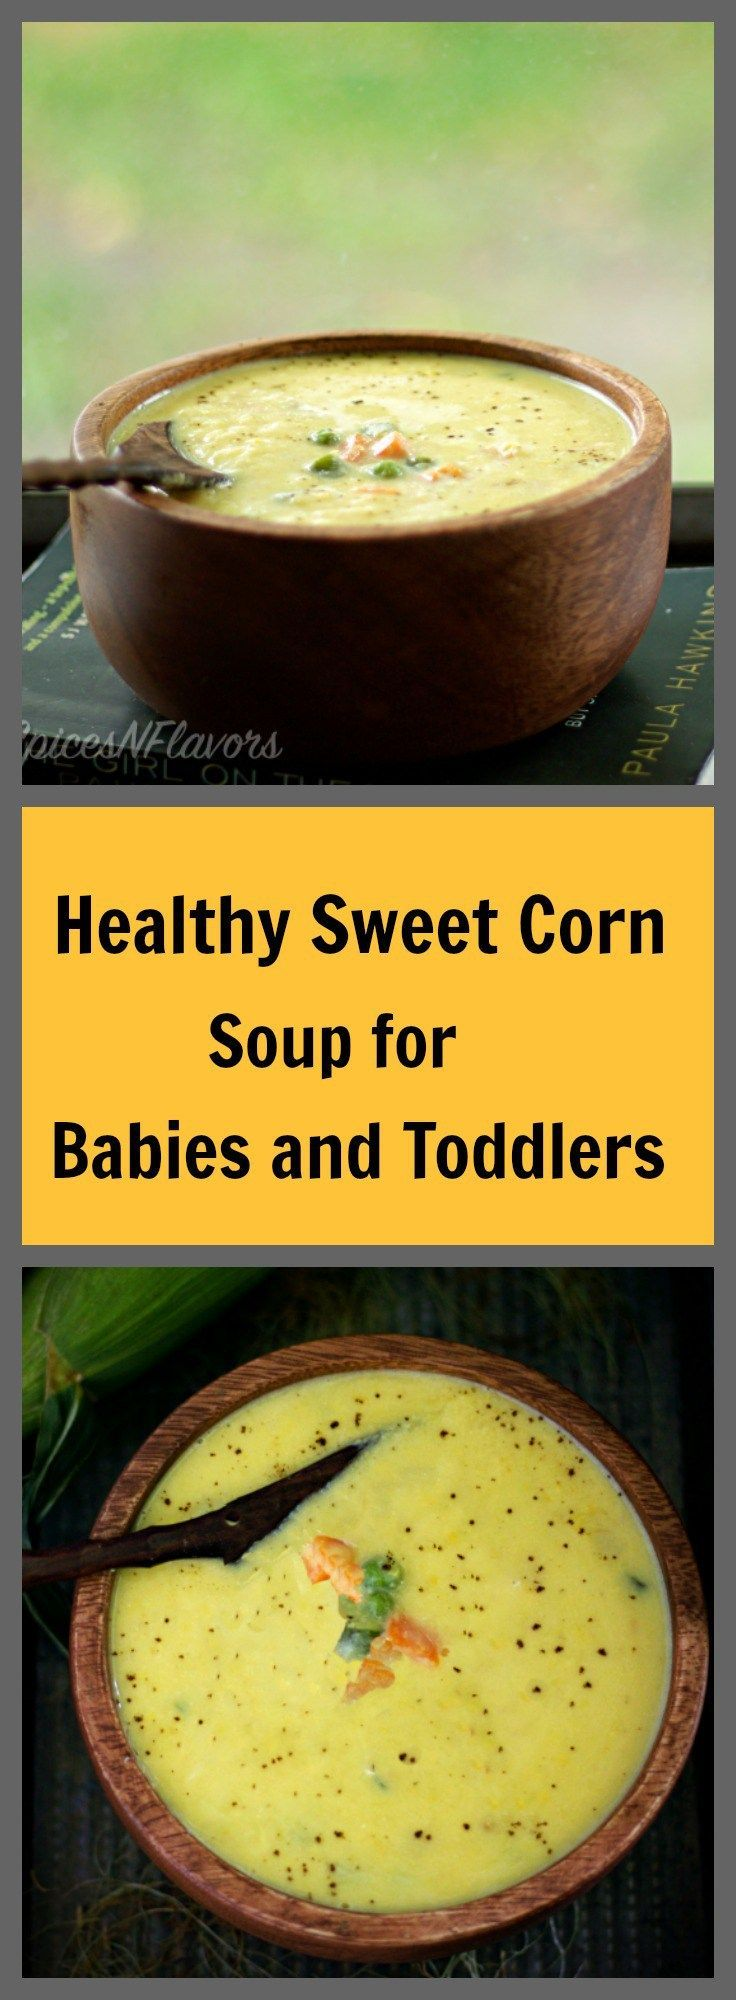 Healthy Sweet Corn Soup for Babies,Kids and Toddlers : spicesandflavors